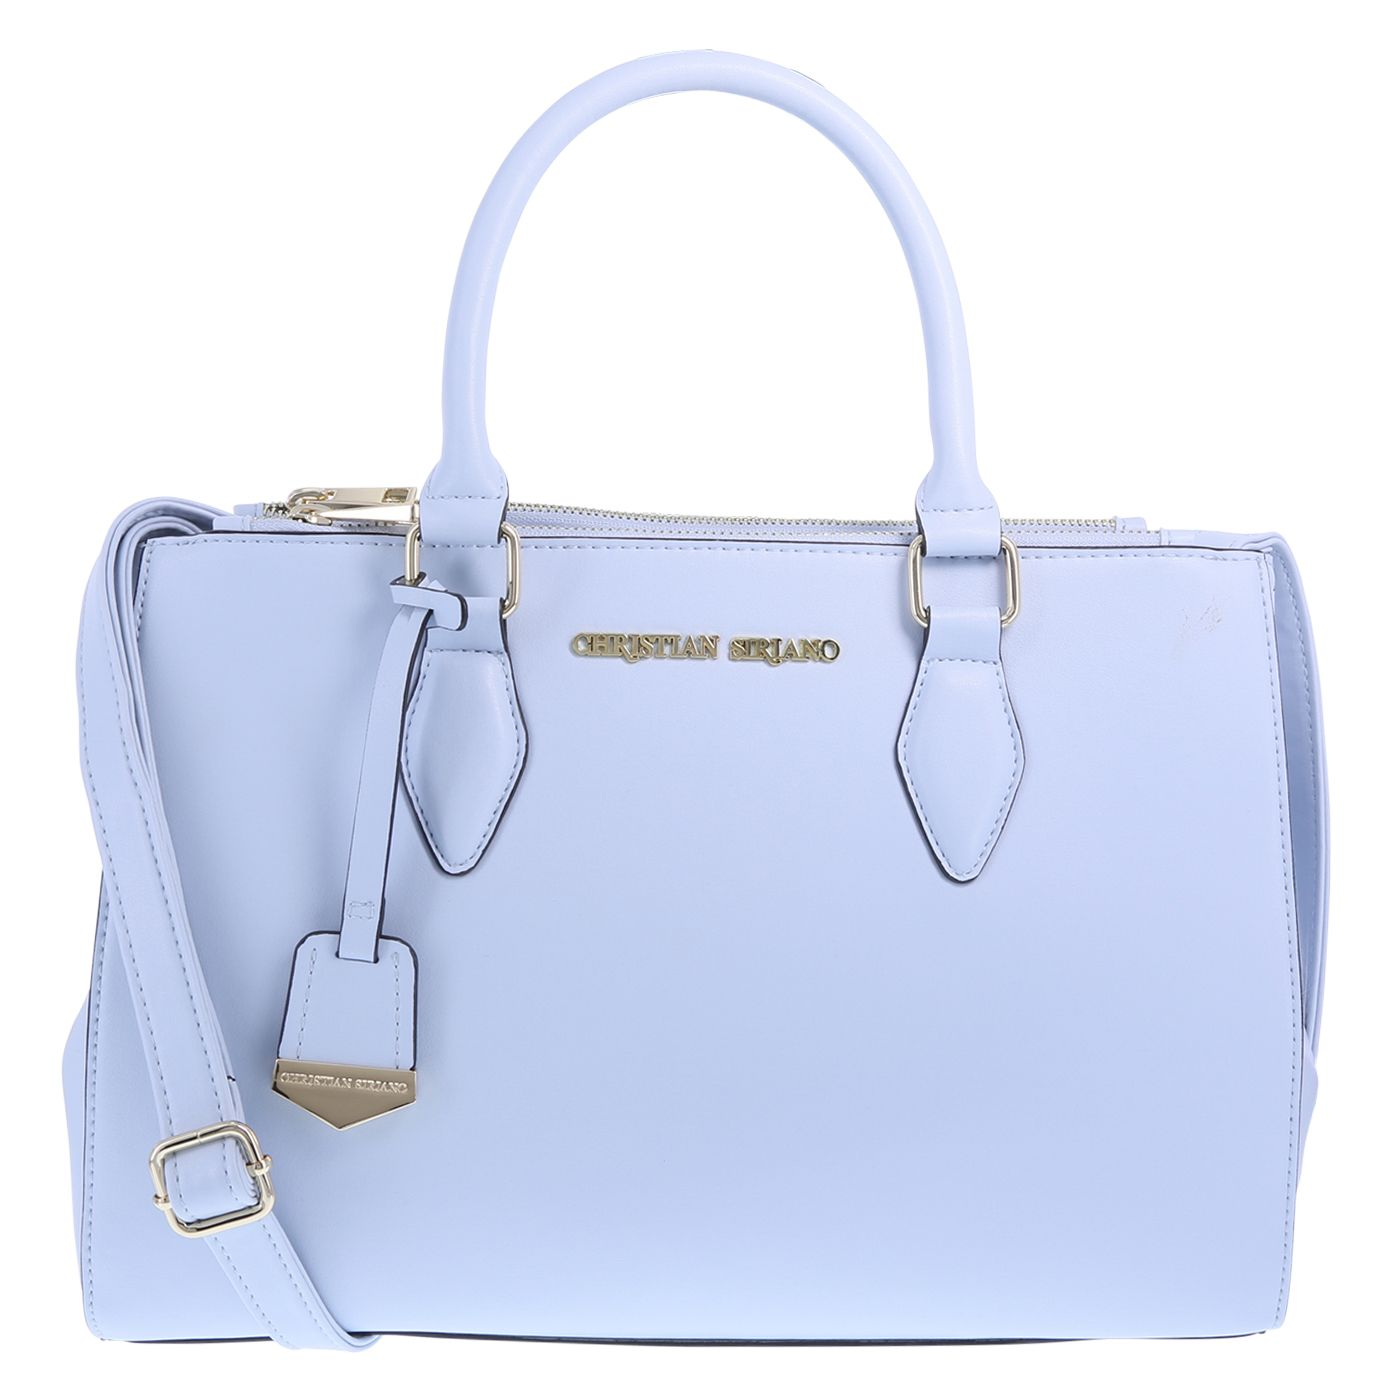 Christian Siriano for Payless satchel in pastel blue for spring ...